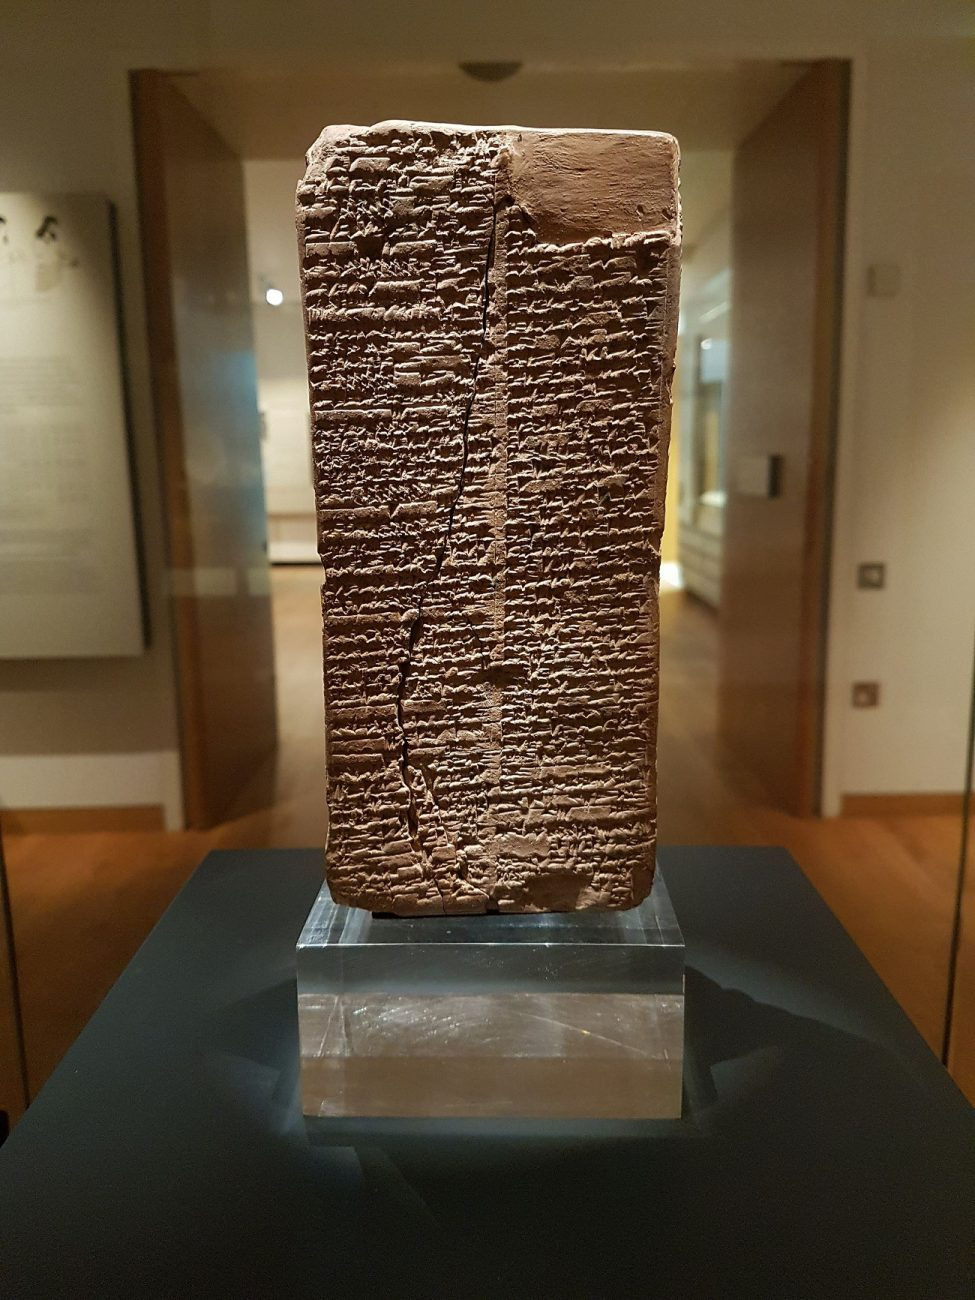 Cuneiform writing on a clay brick, written in the Sumerian language (during the time of the Akkadian empire), and listing all kings from the creation of kingship until 1800 BC when the list was created. Image Credit: Wikimedia Commons.